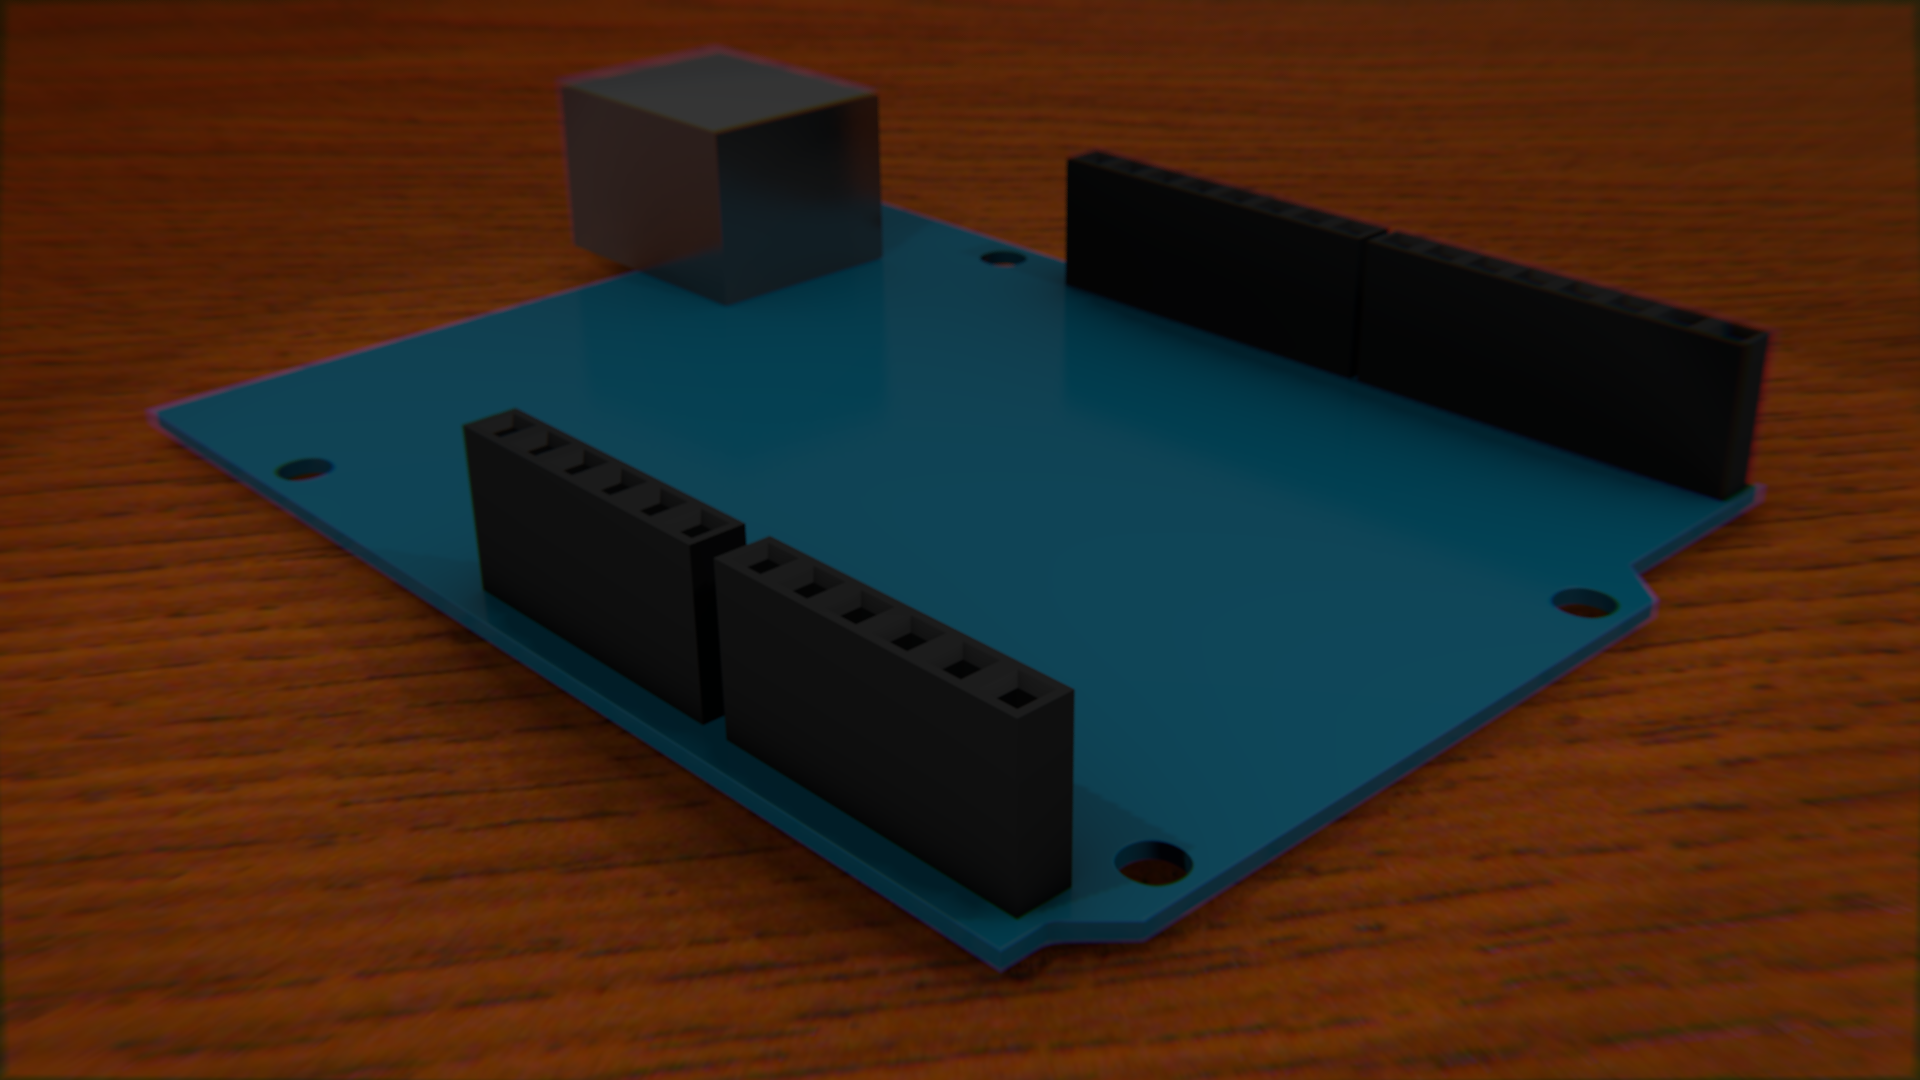 A render of an Arduino Uno